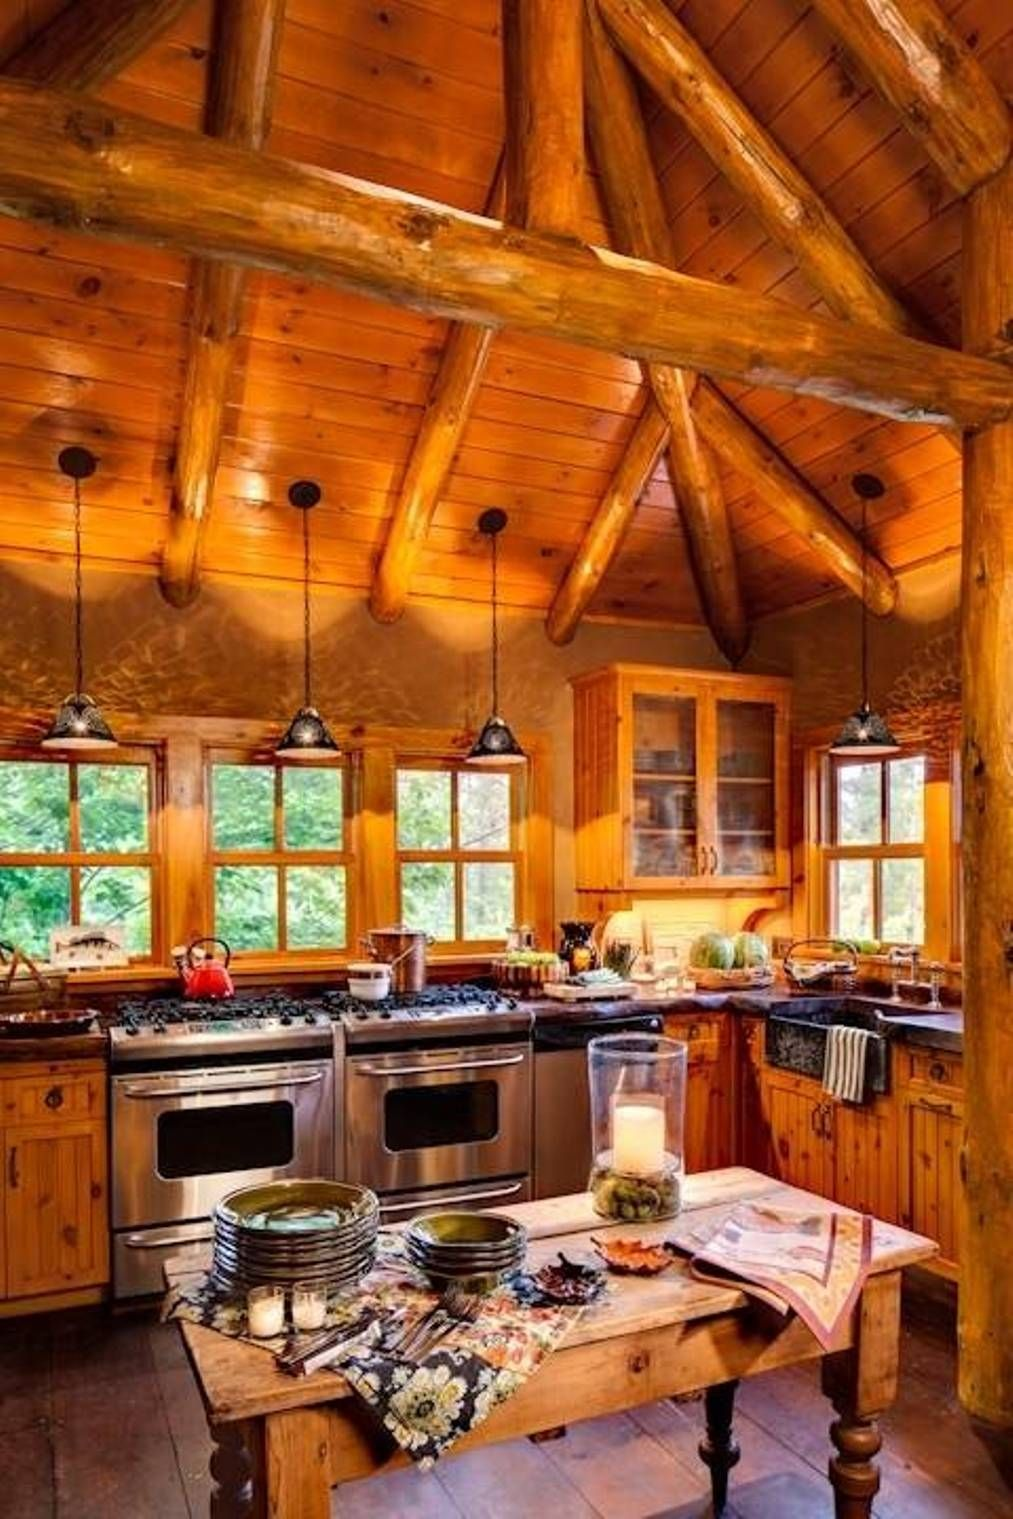 Log home interior ideas outdoor log cabin lights  afshowcaseprop  pinterest